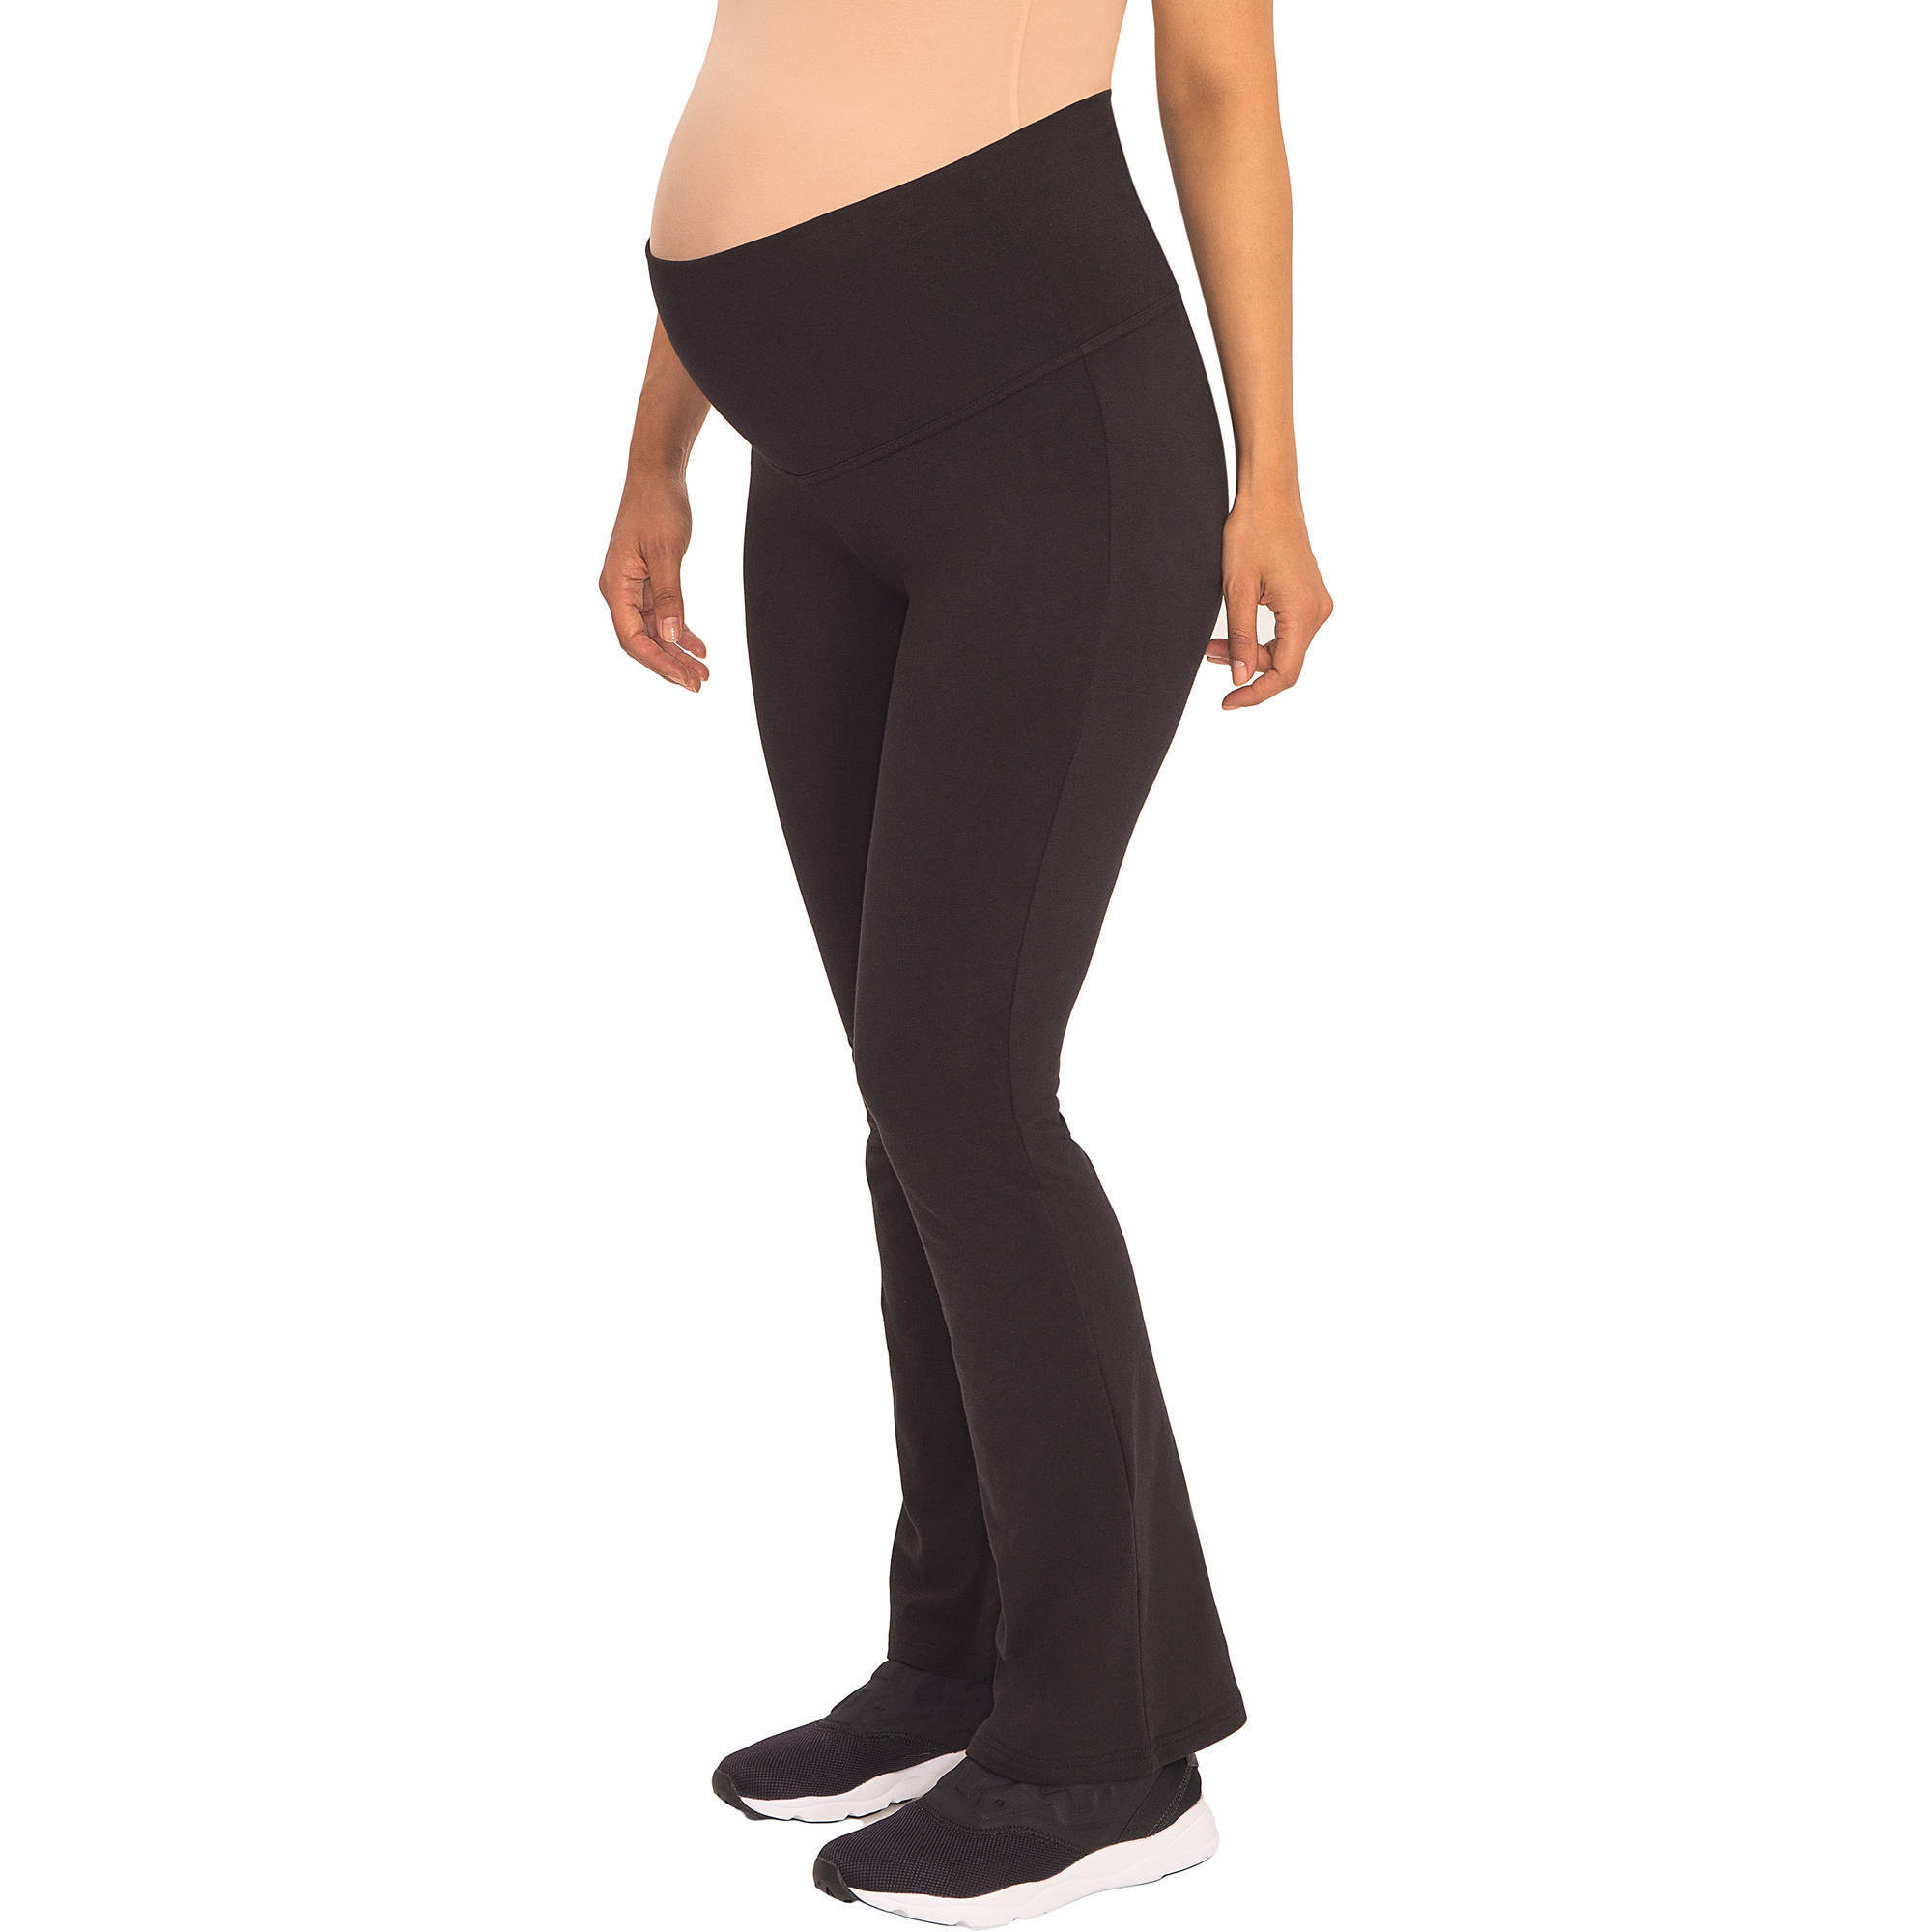 Great Expectations Maternity Yoga Pants with Roll Down Waistband